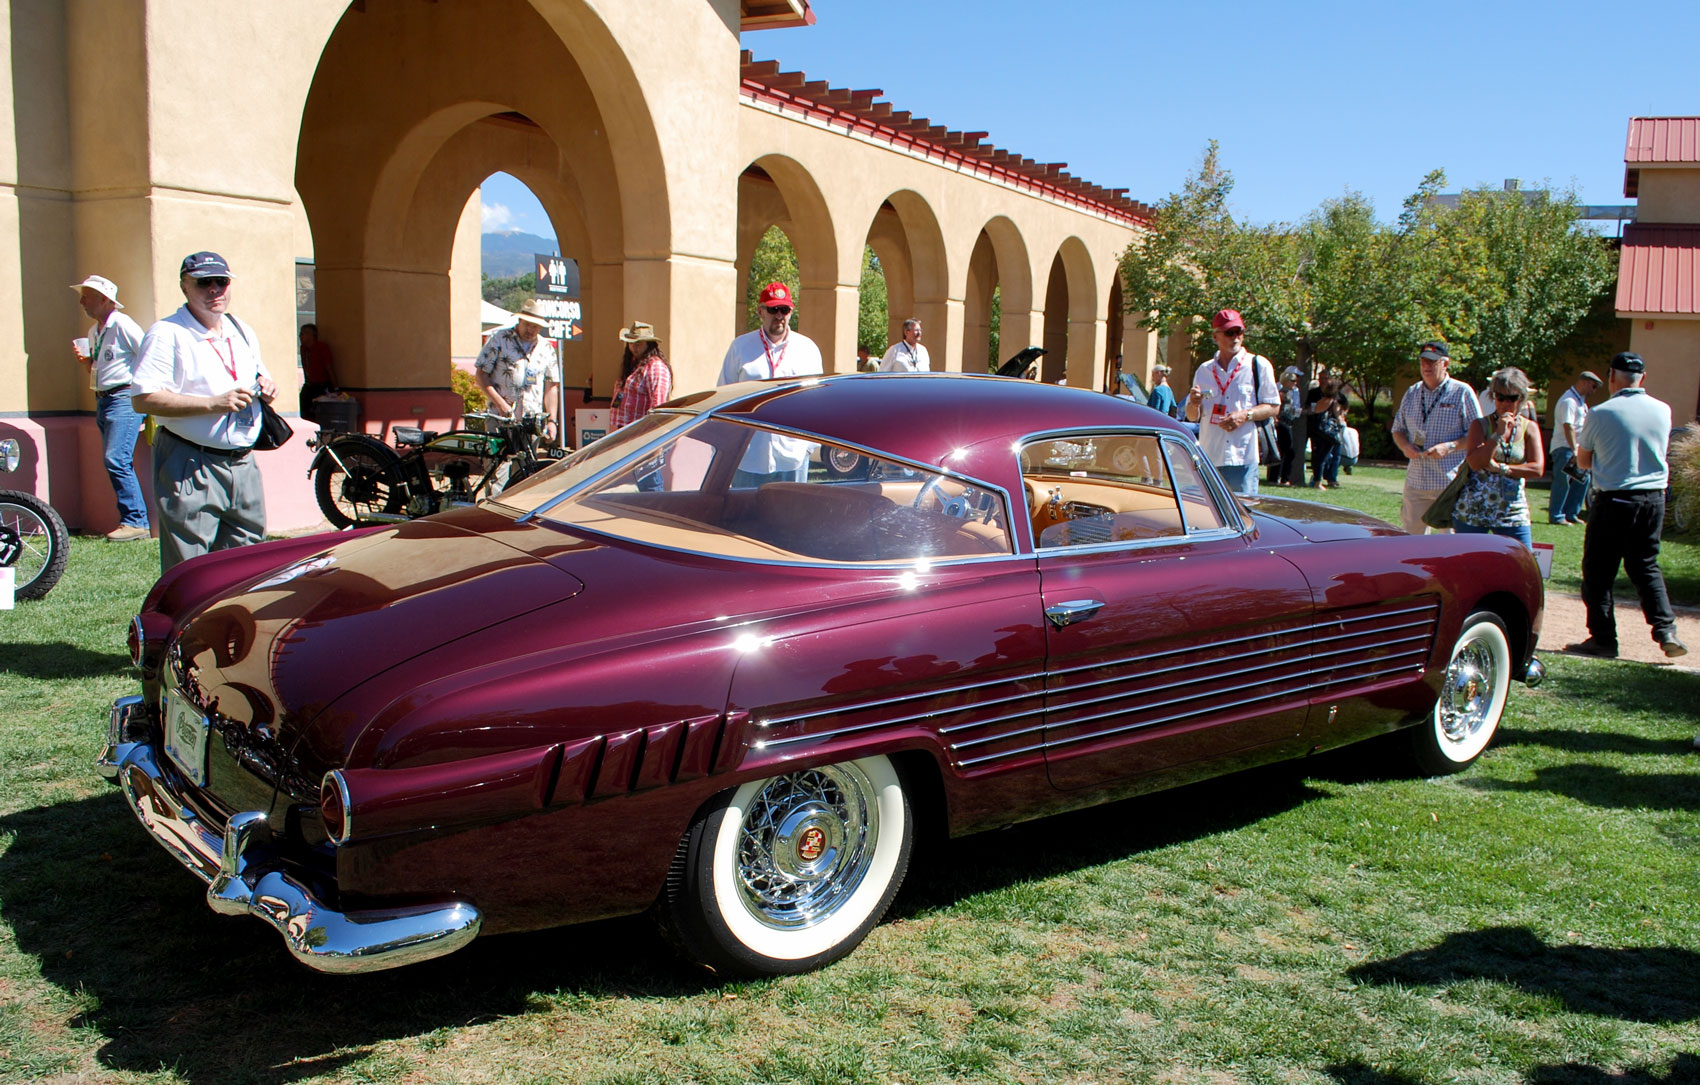 Rita-Hayworth-Cadillac-Ghia-pc.jpg